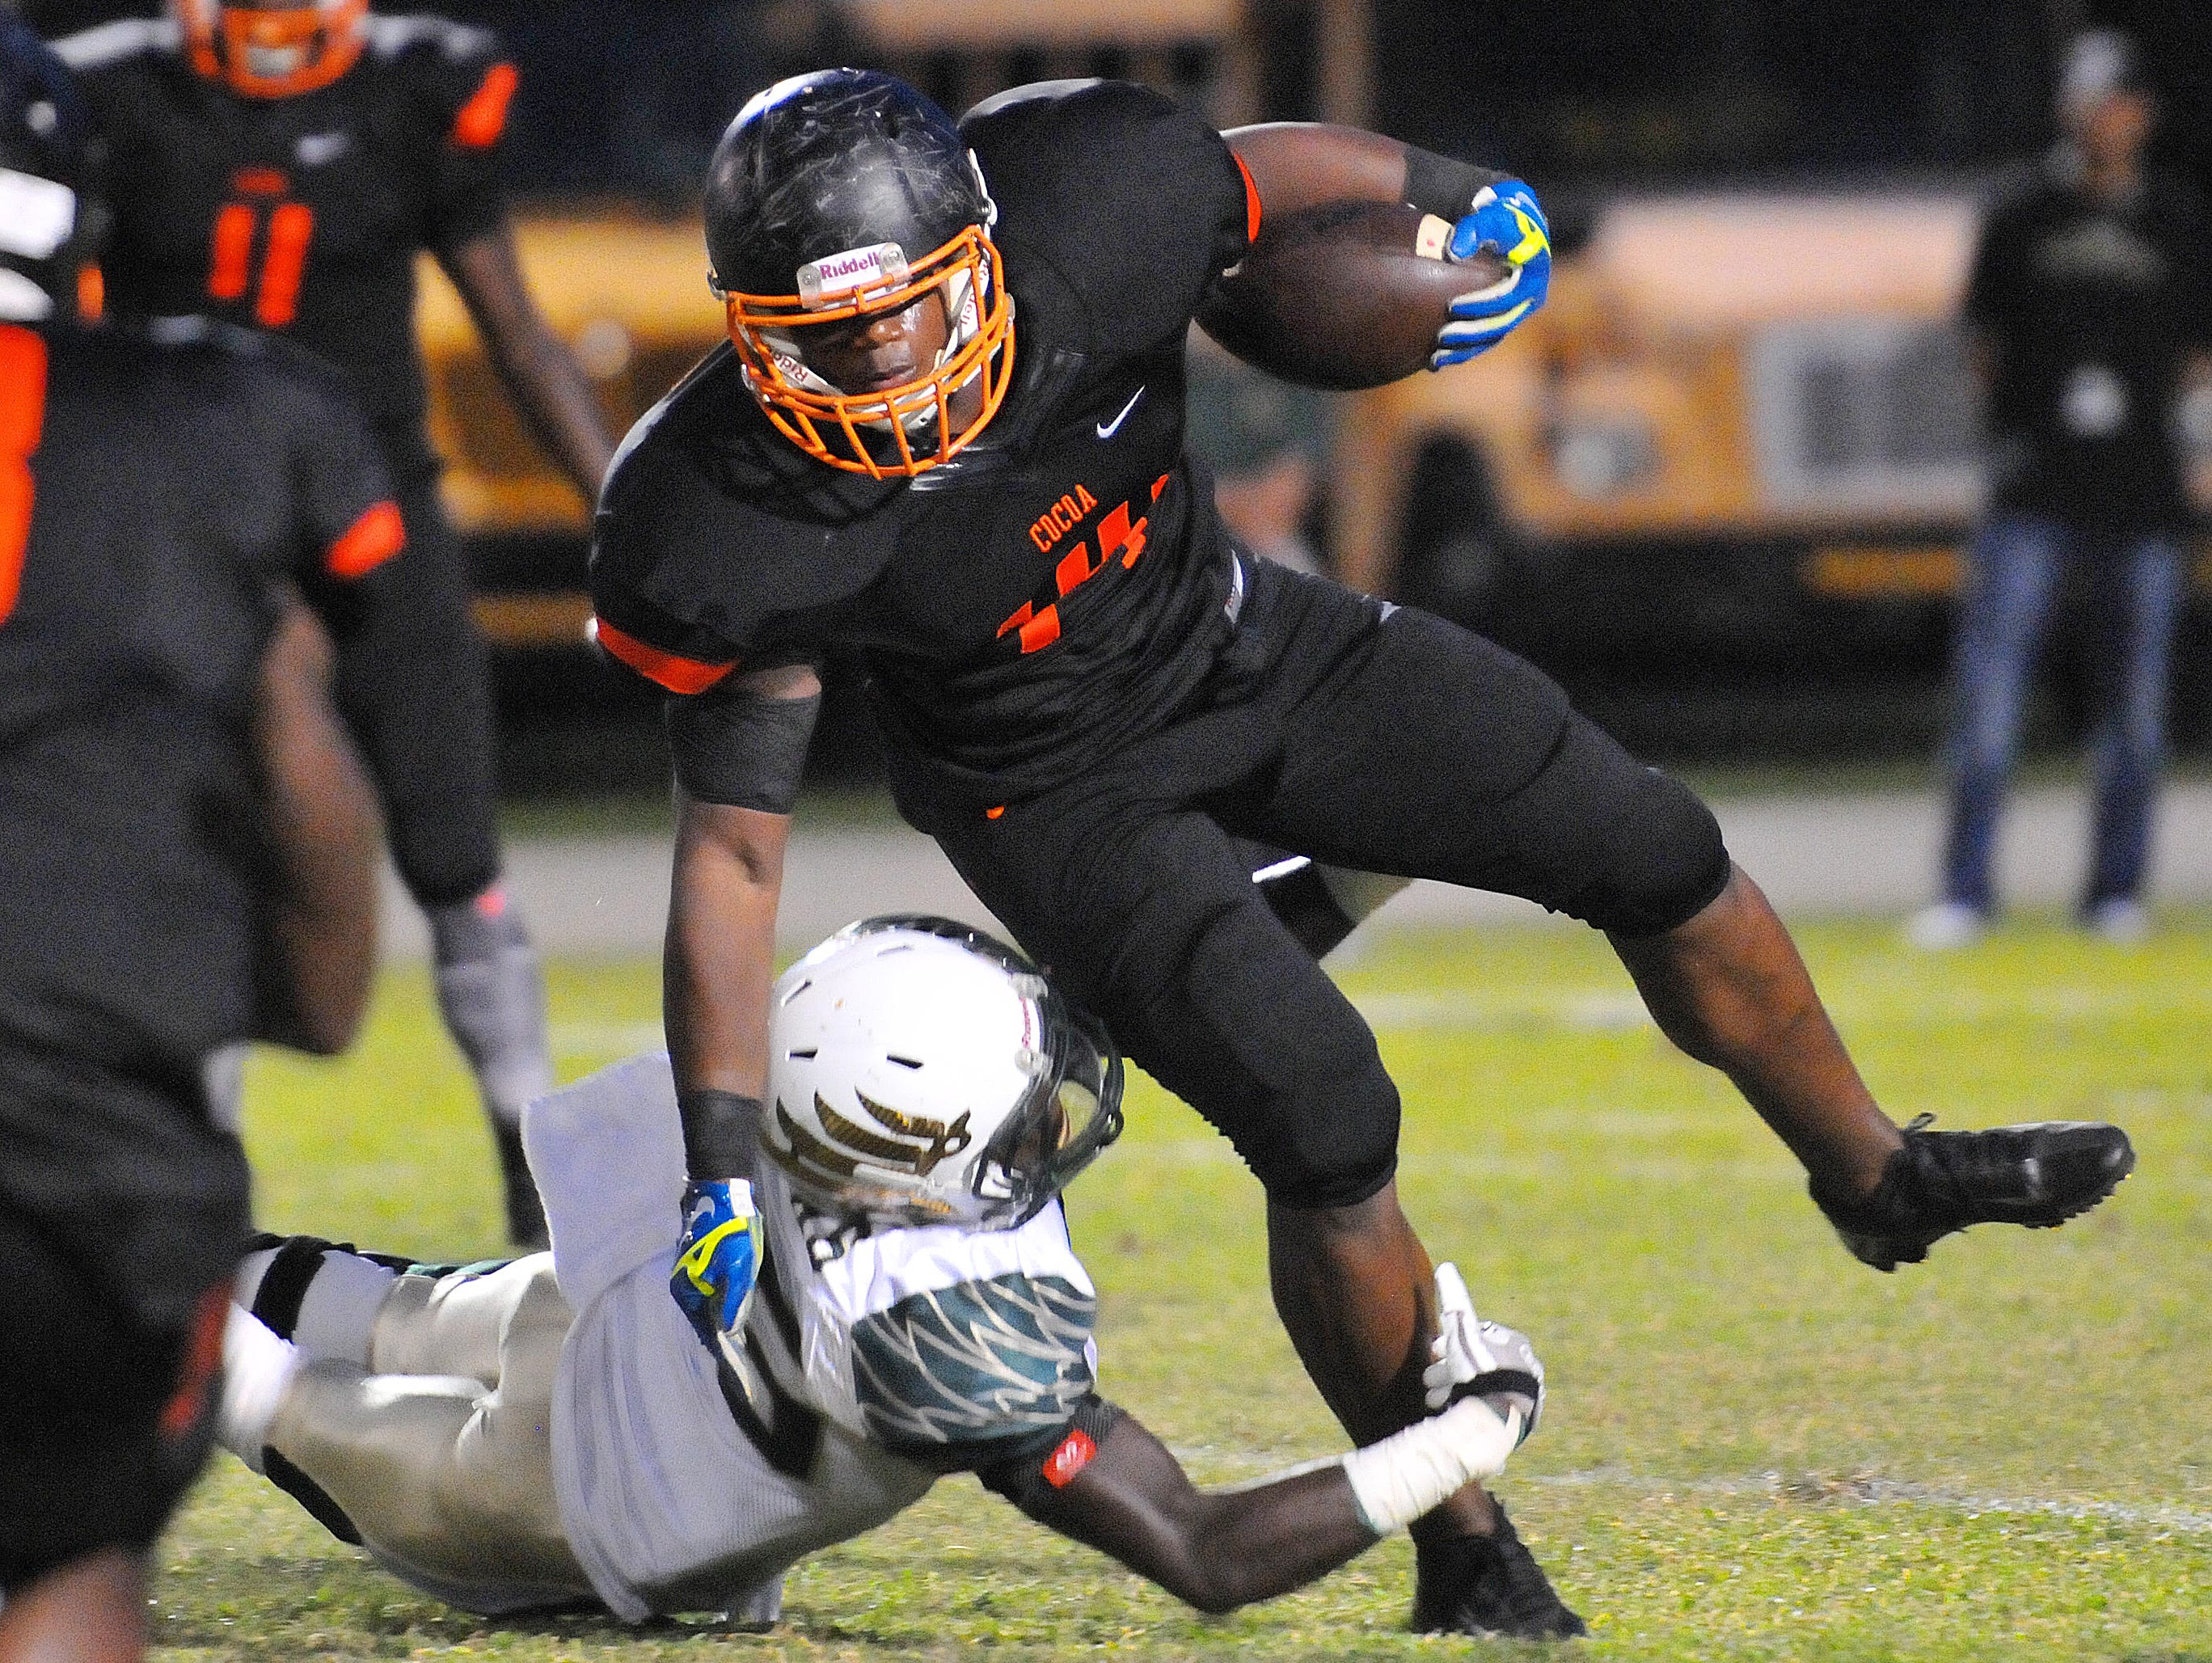 Cocoa High's Howard Stewart tries to pick up extra yards as Viera High's Jay Boyd holds on during Friday night's game.